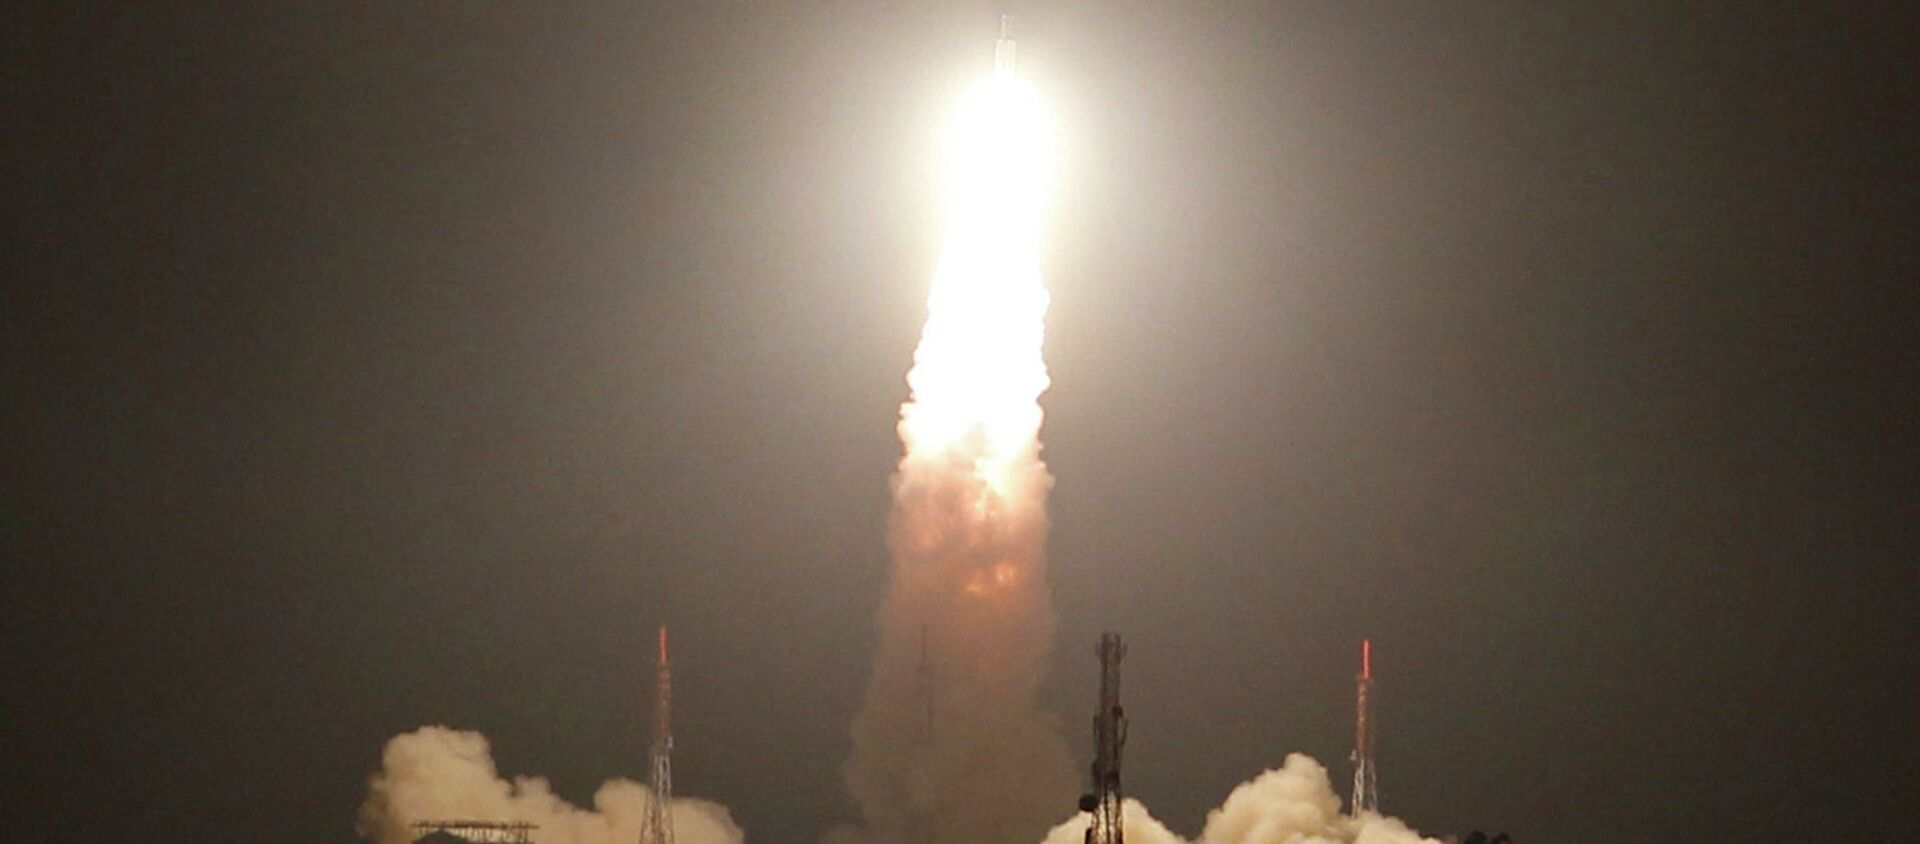 The Indian Space Research Organization (ISRO) has ended months of dithering and announced the launch of a satellite that will be shared by several member states of the South Asian Association for Regional Cooperation (SAARC). As the needs of most South Asian countries is not substantial, India will be hoping that this satellite will encourage them to say no to China's plan to involve them in a similar initiative. - Sputnik International, 1920, 07.08.2017